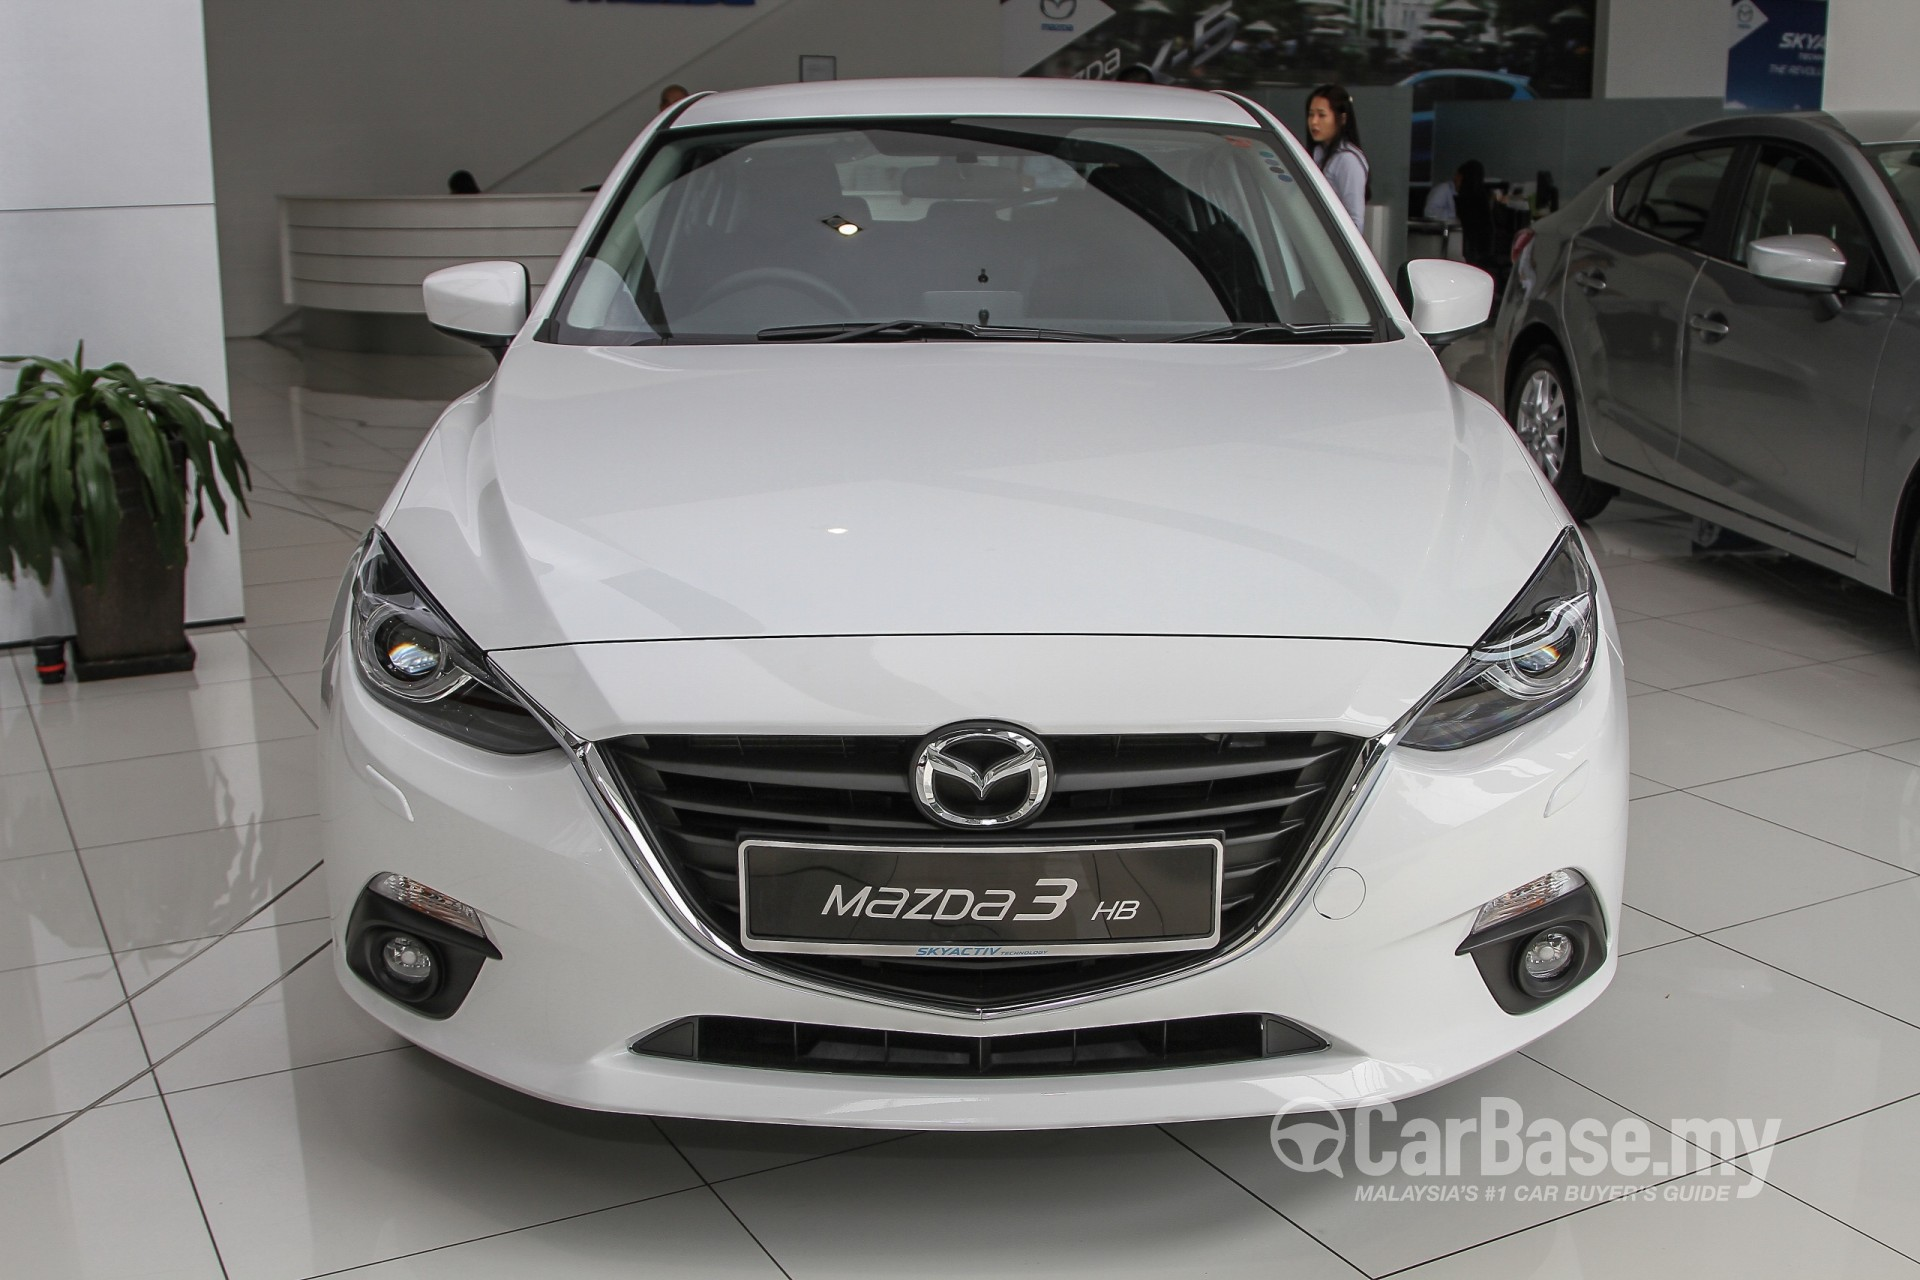 mazda 3 hatchback bm 2015 exterior image 20572 in malaysia reviews specs prices. Black Bedroom Furniture Sets. Home Design Ideas